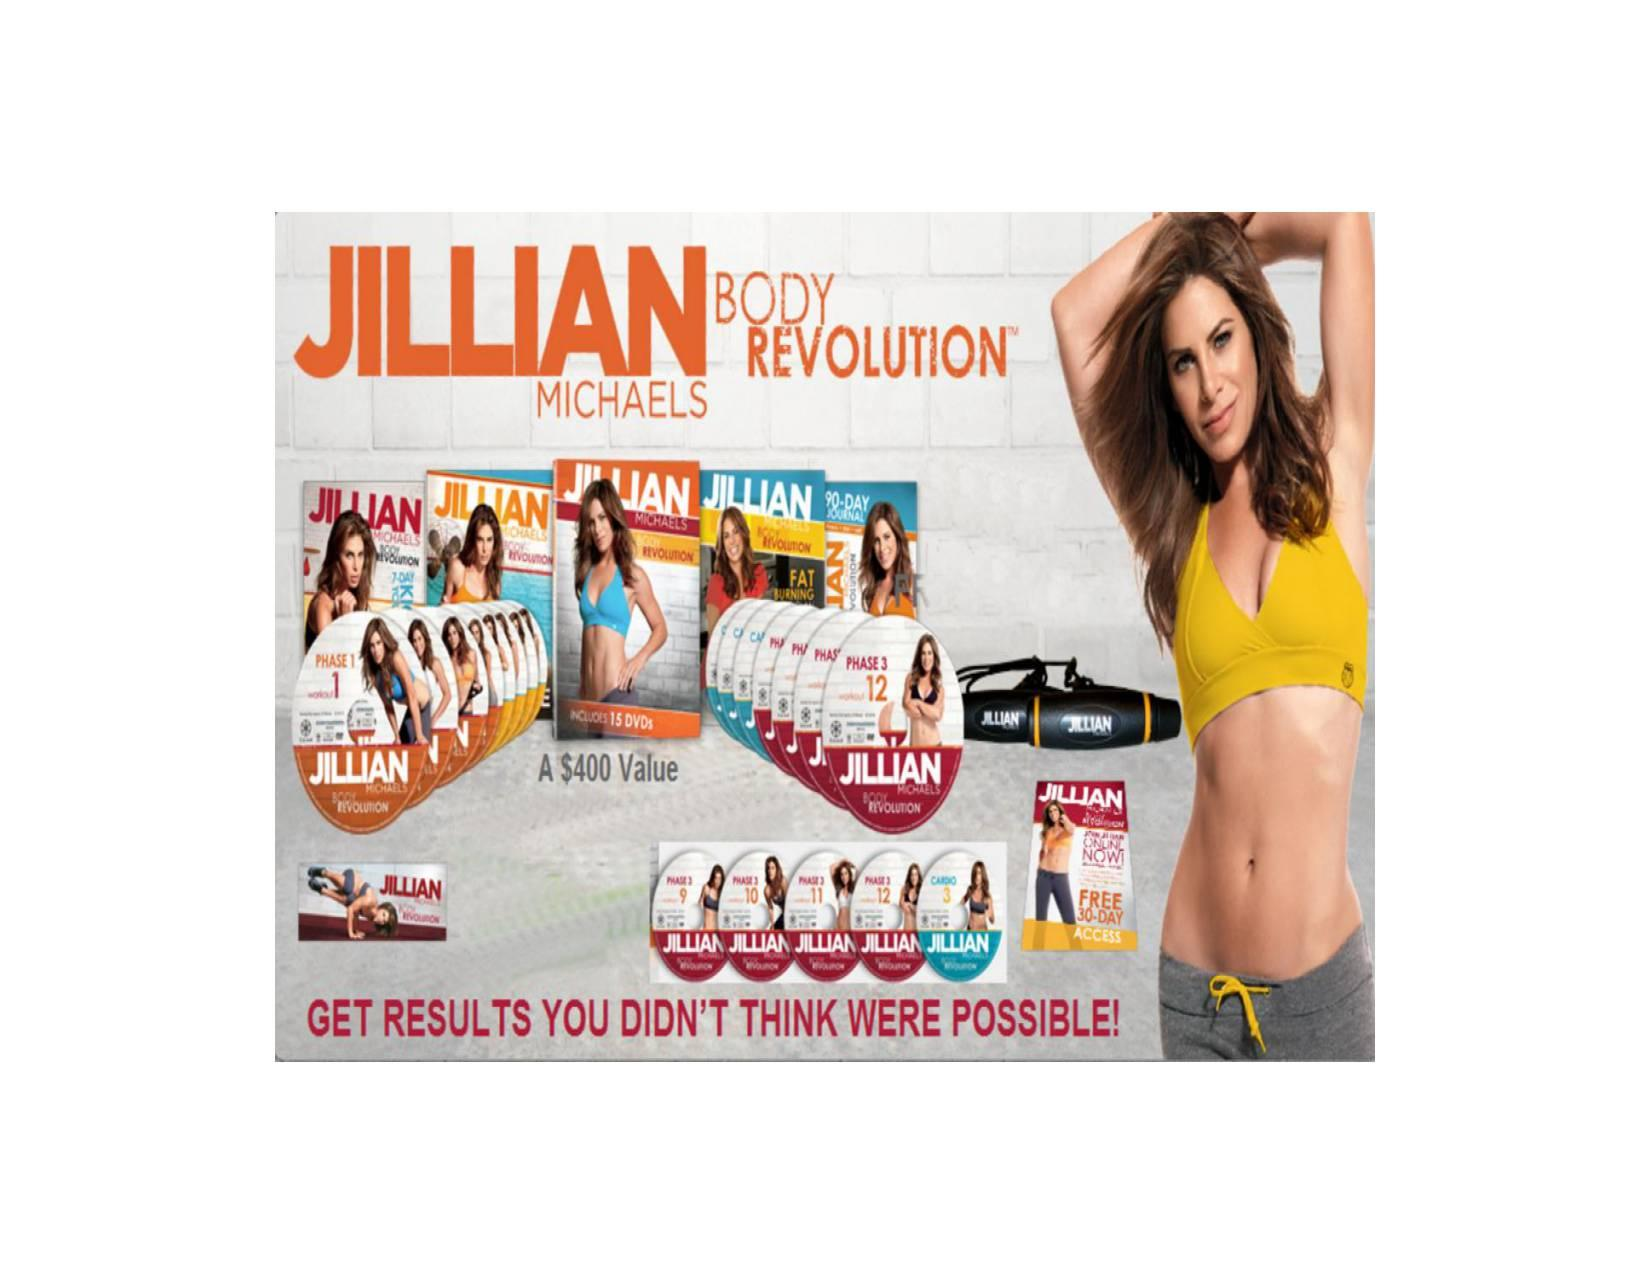 HOT ITEM!!! Body Revolution Jillian Michaels 15DVDRip dlm Flashdisk